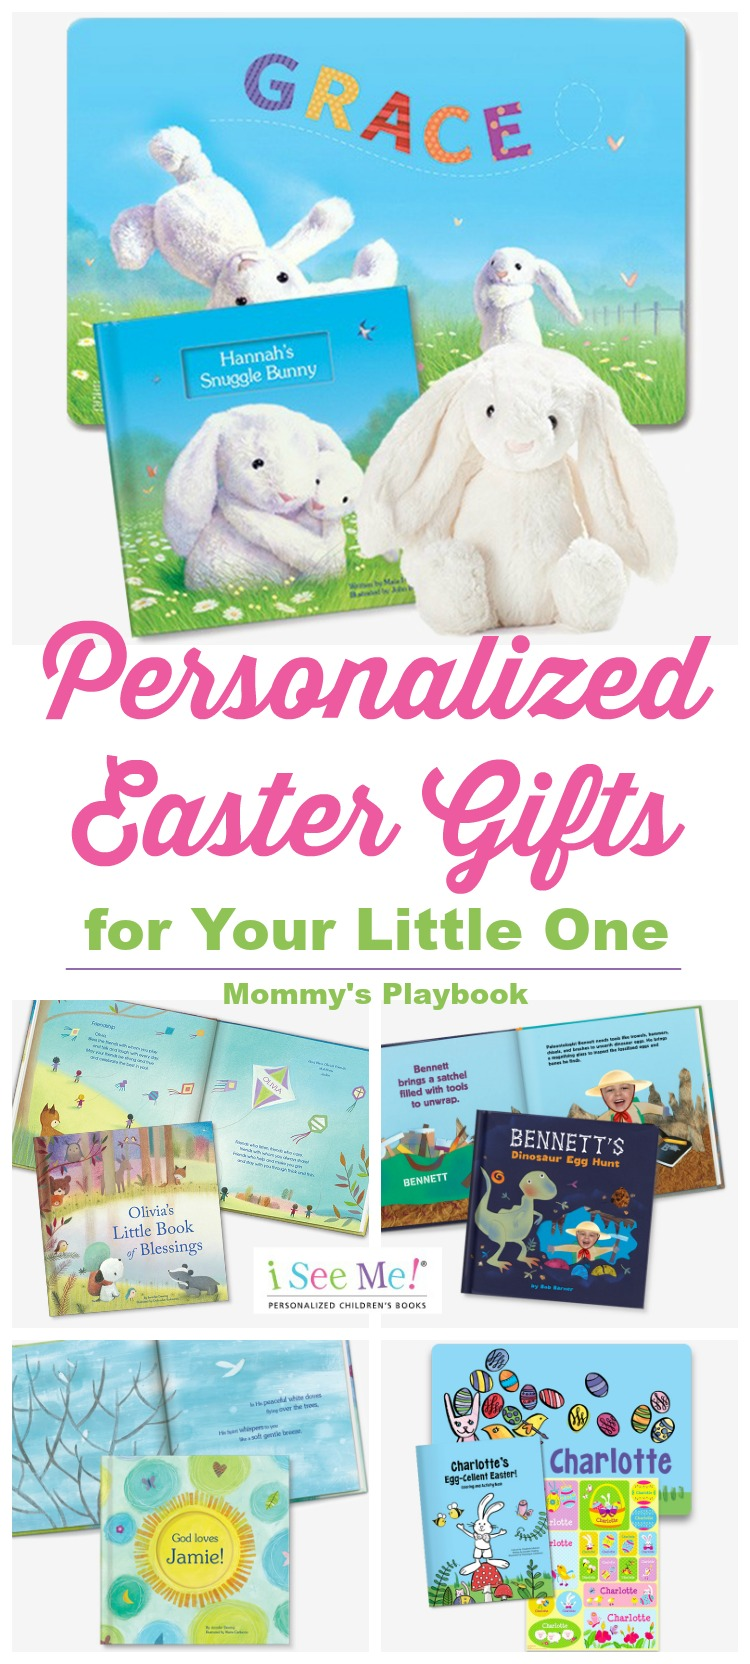 5 Personlized Easter Gifts for Your Little One